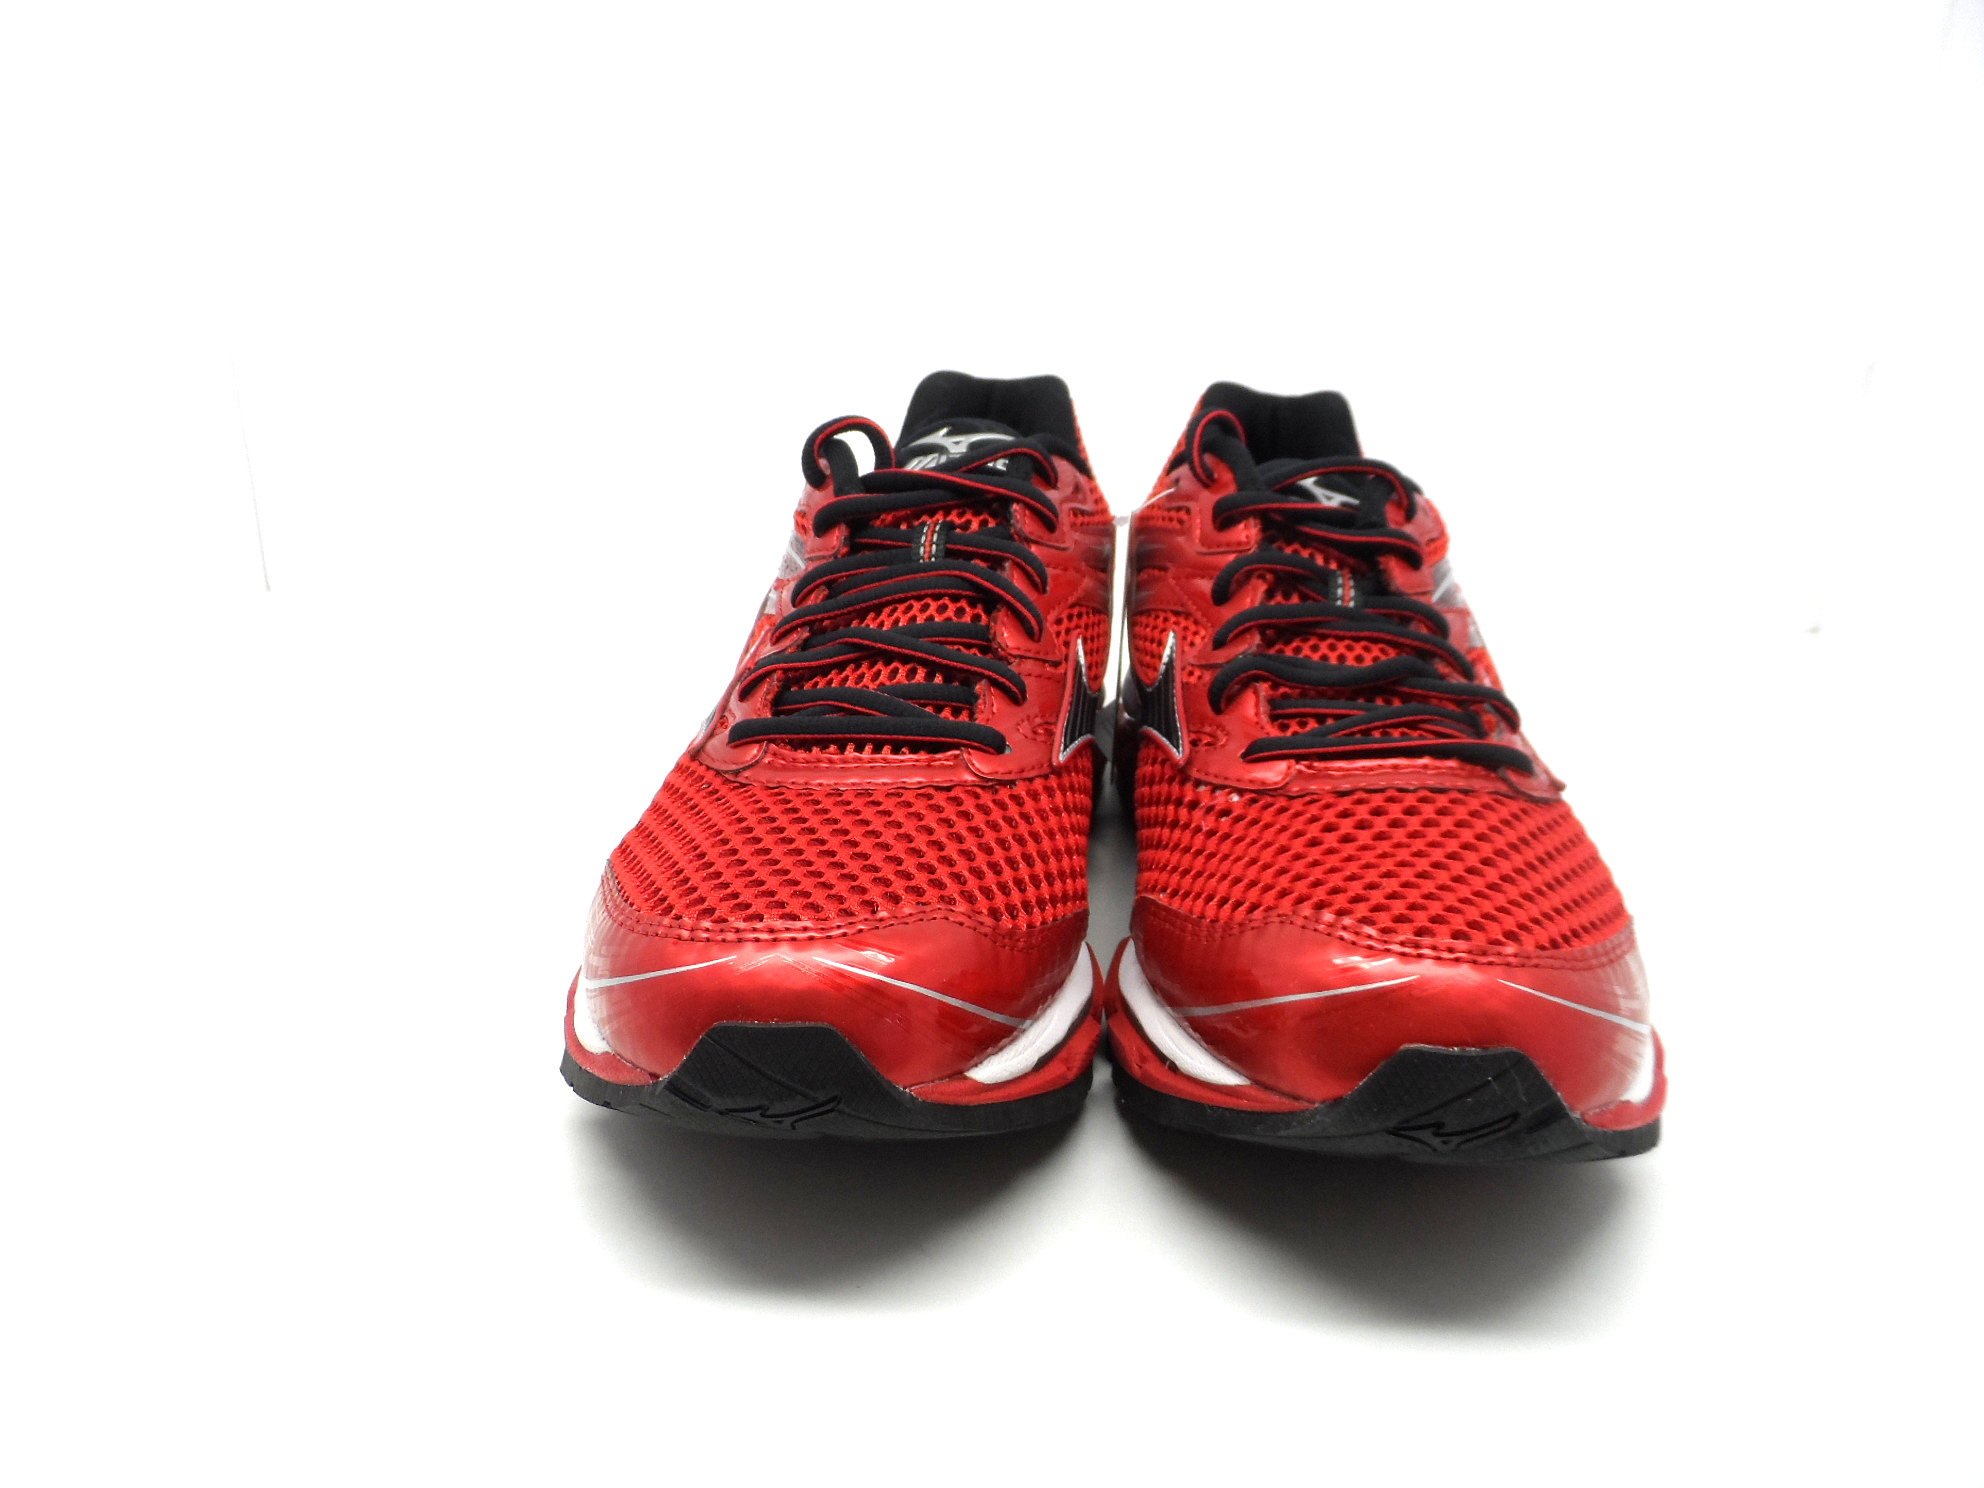 mizuno men 39 s wave enigma 5 running shoe chinese red black size 10 5 new ebay. Black Bedroom Furniture Sets. Home Design Ideas